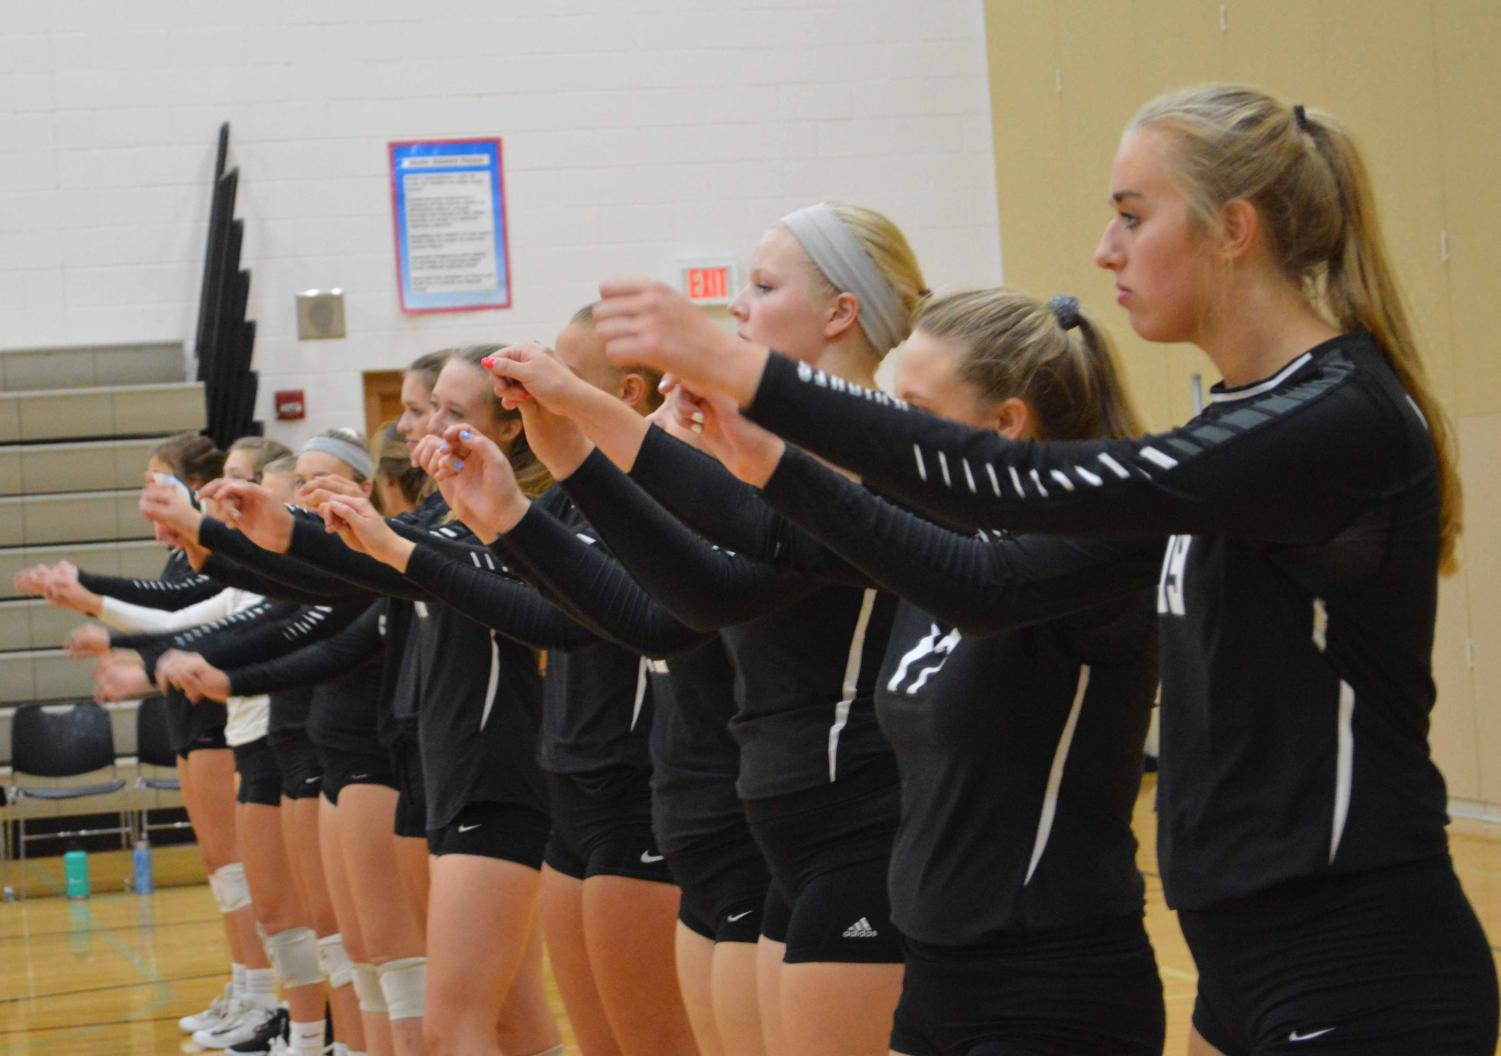 The Kaneland varsity volleyball team lines up for their game.